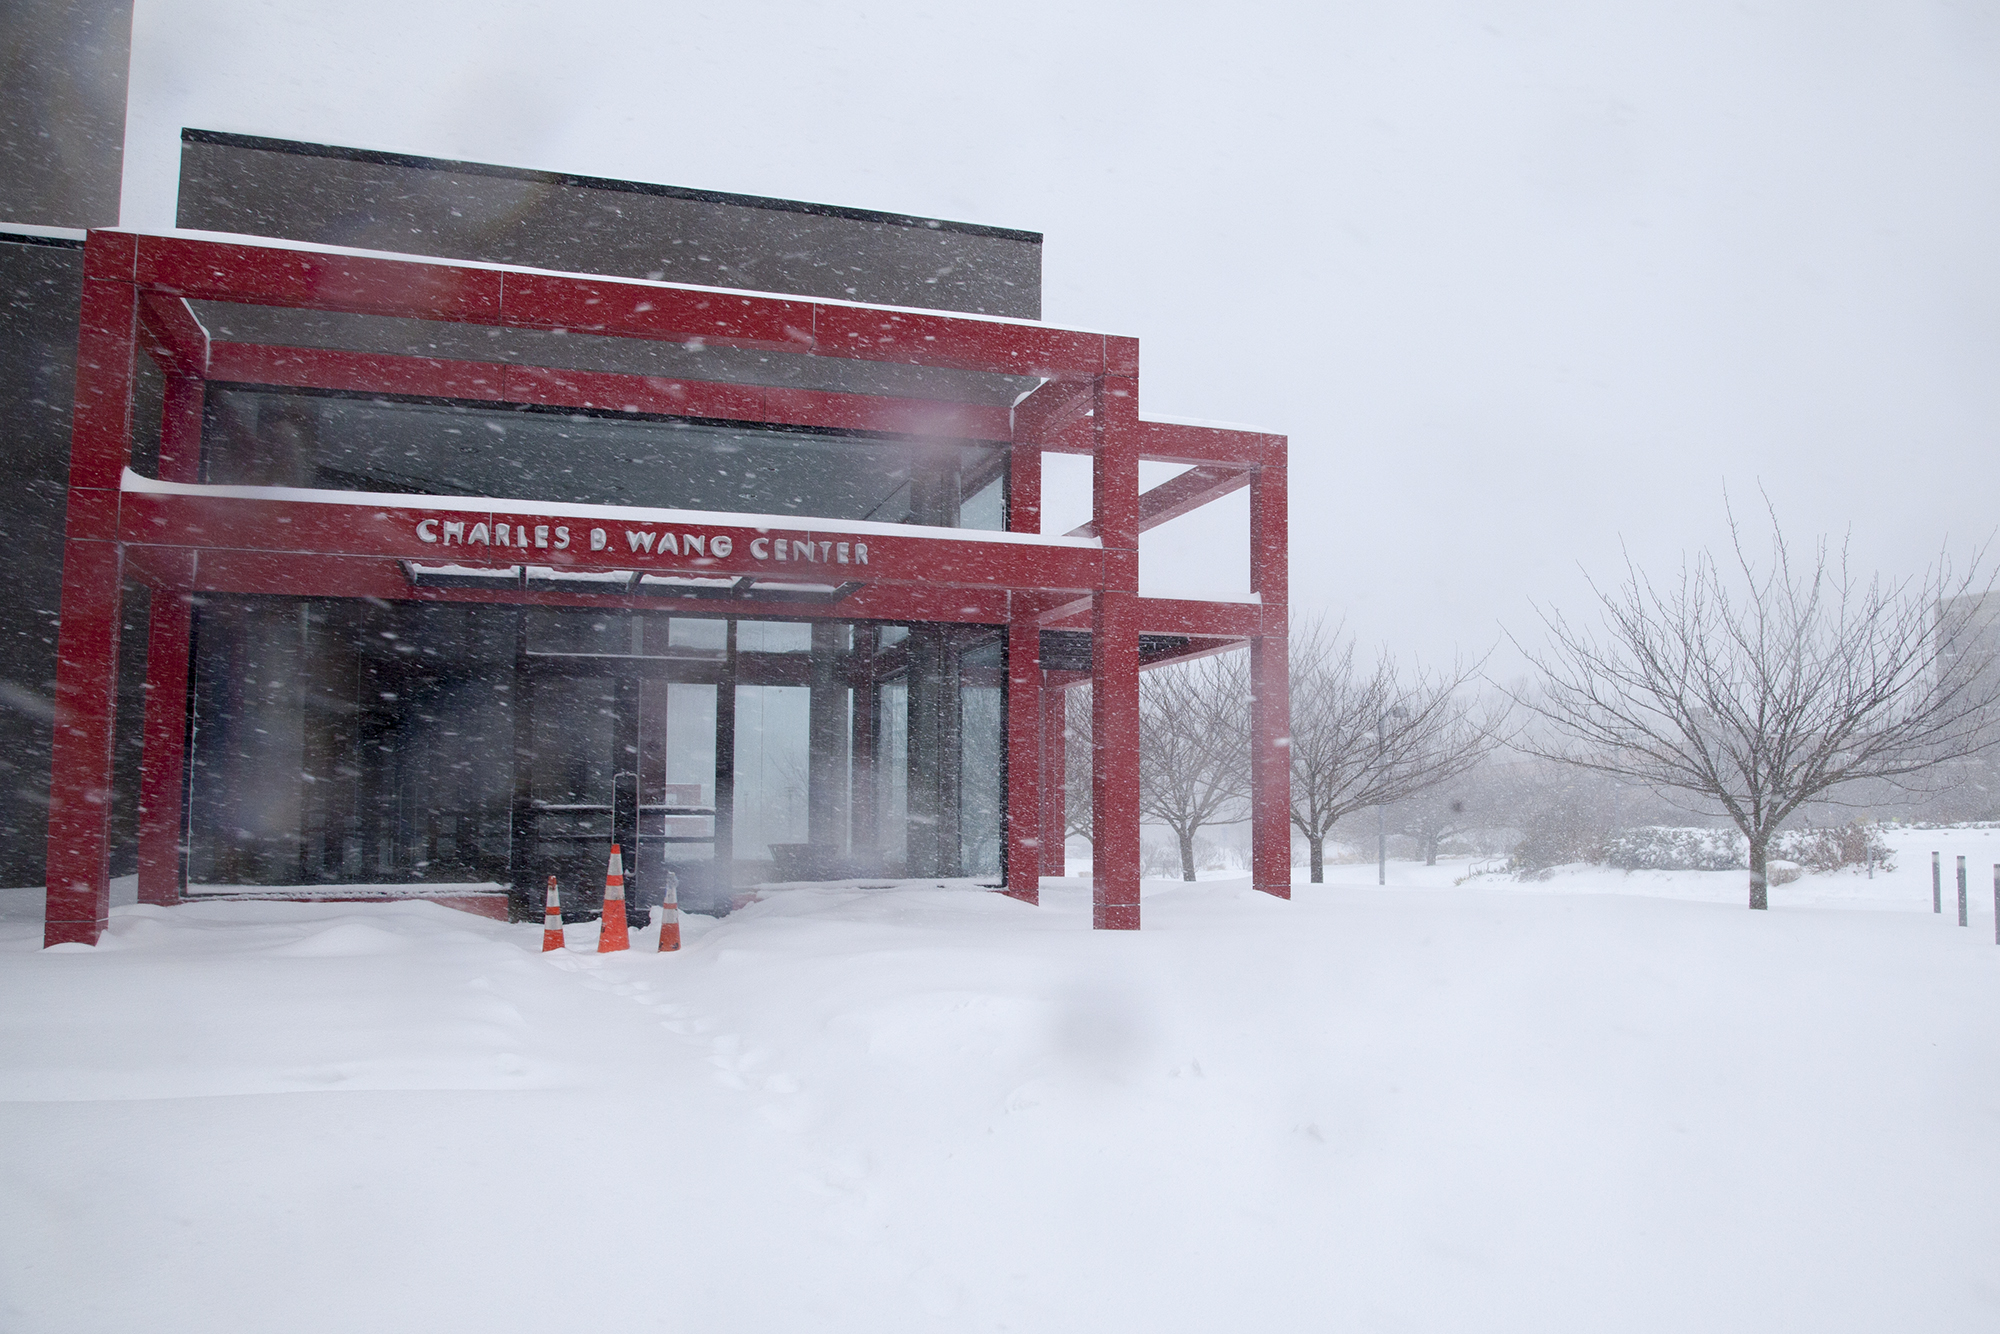 The Wang Center at Stony Brook University during Winter Storm Jonas on Saturday, Jan. 23. The Wang Center was closed for Saturday. CHRISTOPHER CAMERON/THE STATESMAN